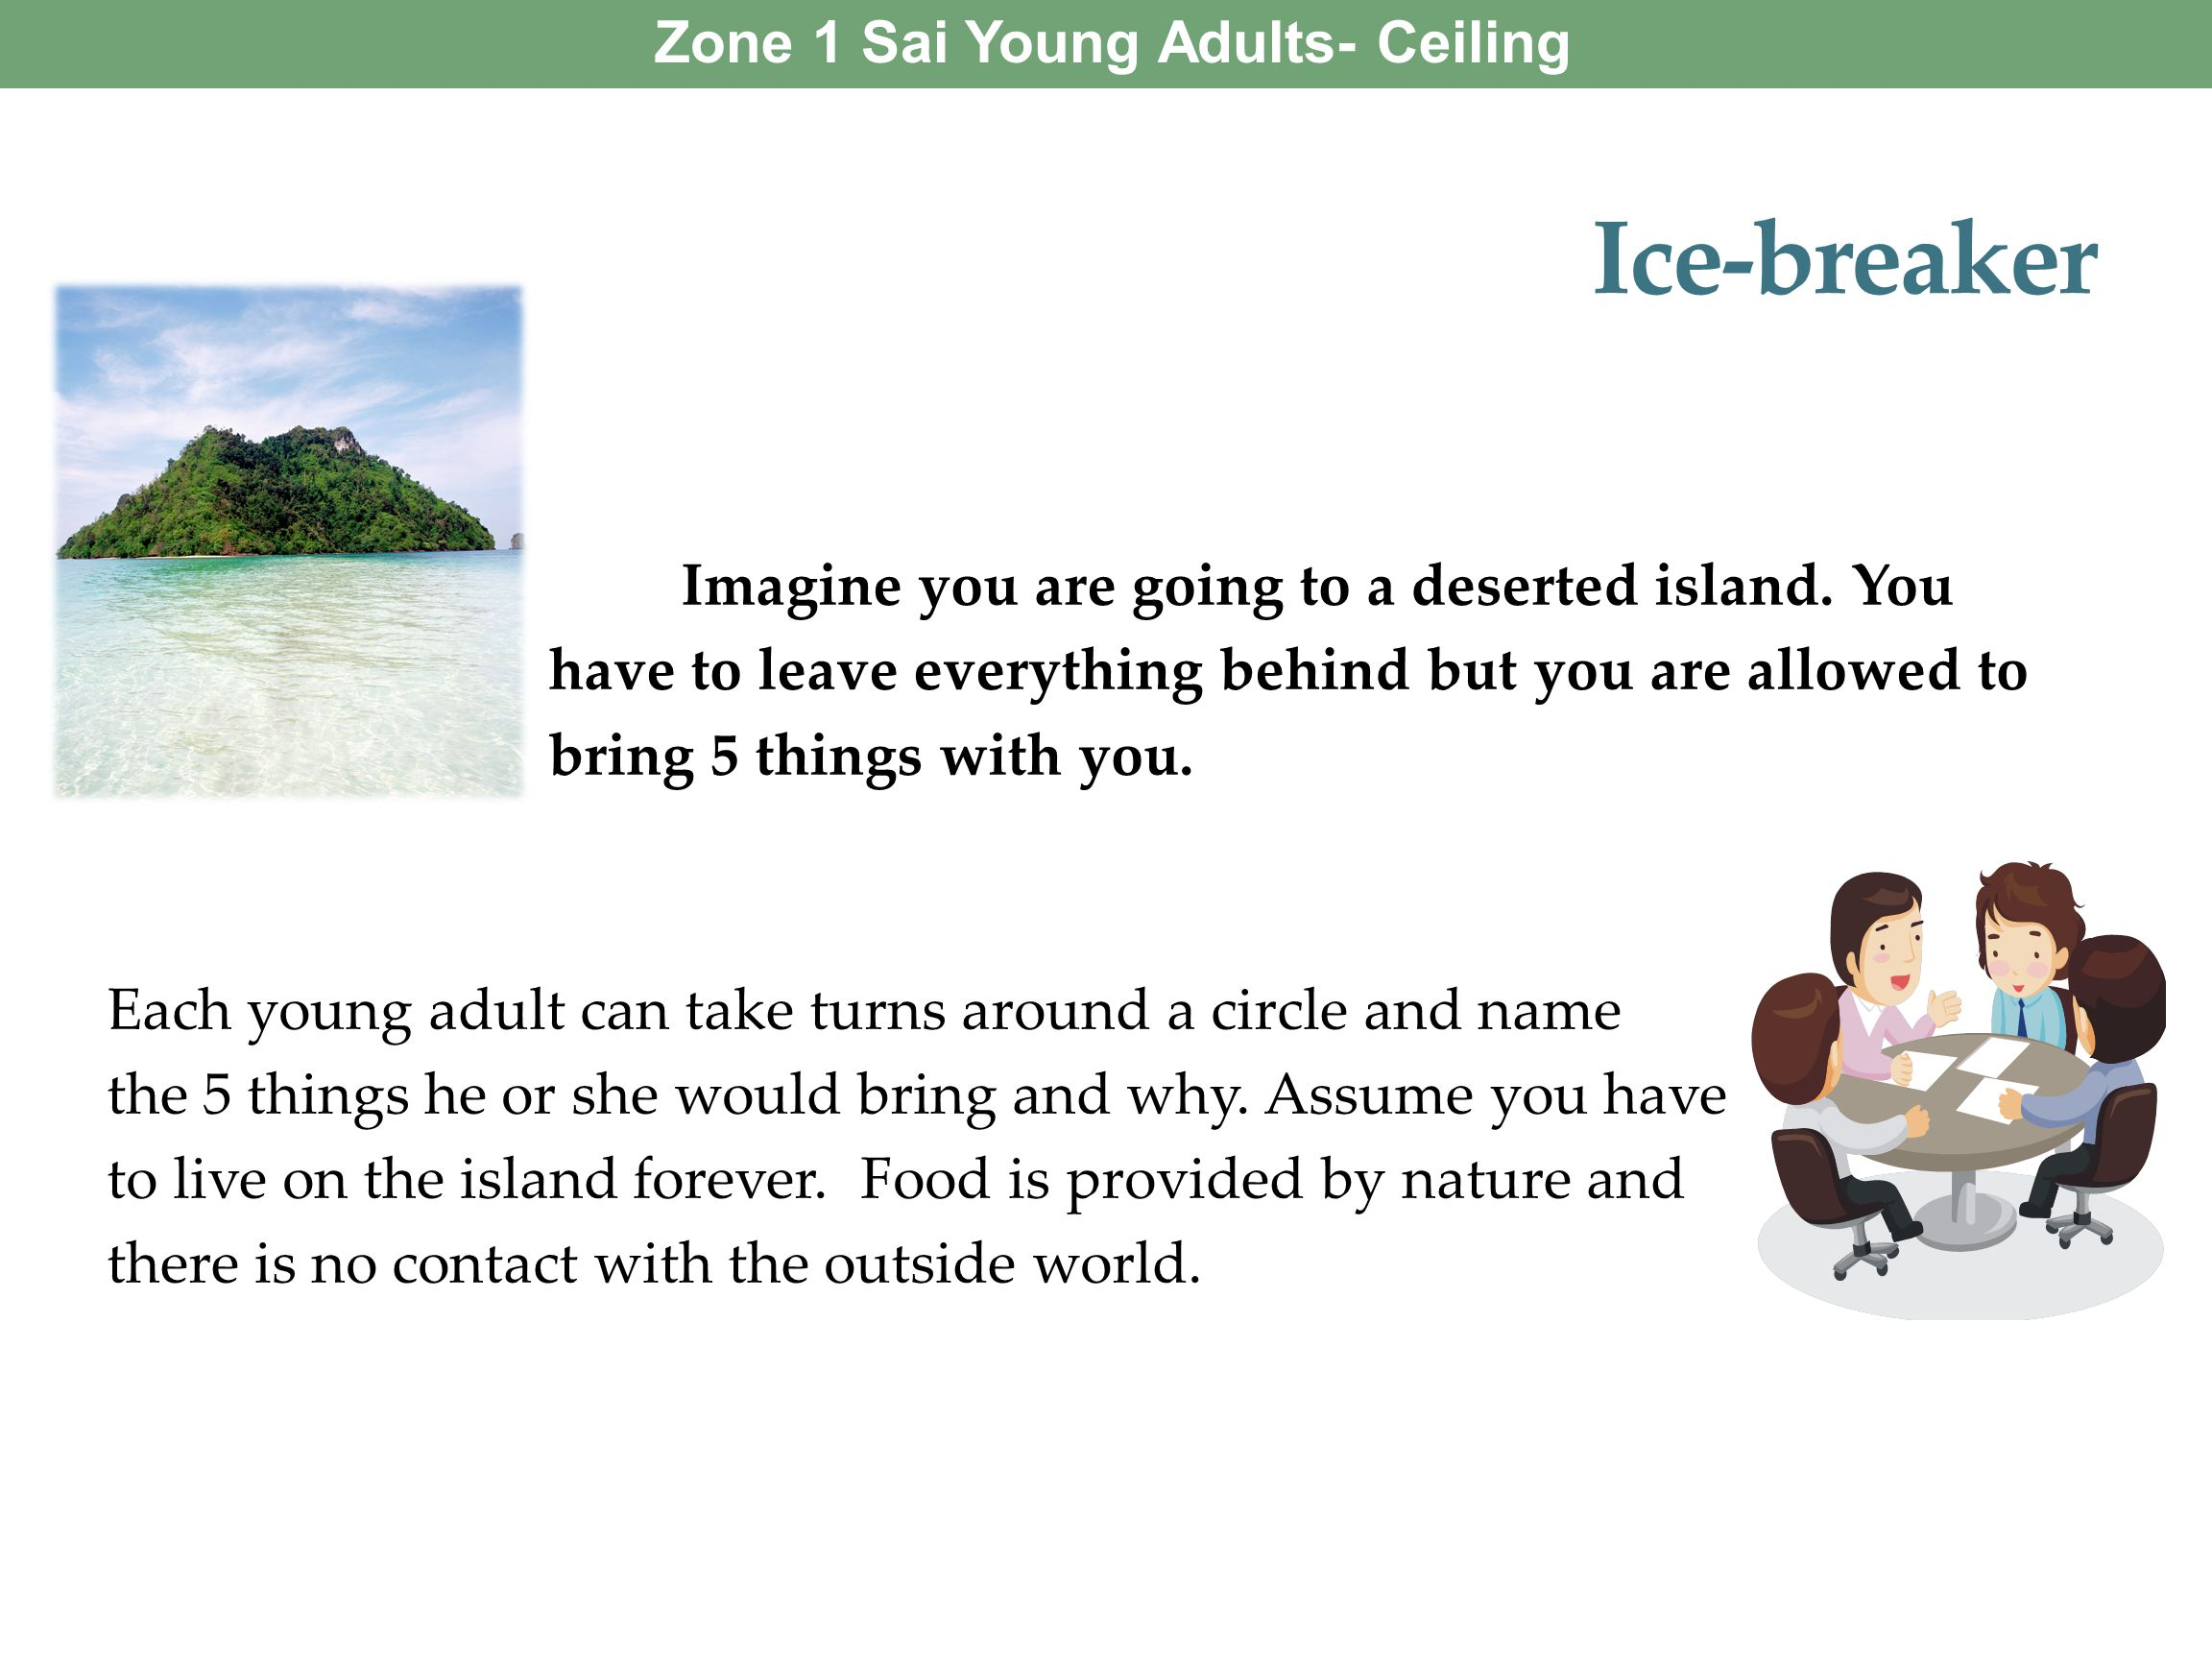 Ice-breaker Zone 1 Sai Young Adults- Ceiling on Desires: Money